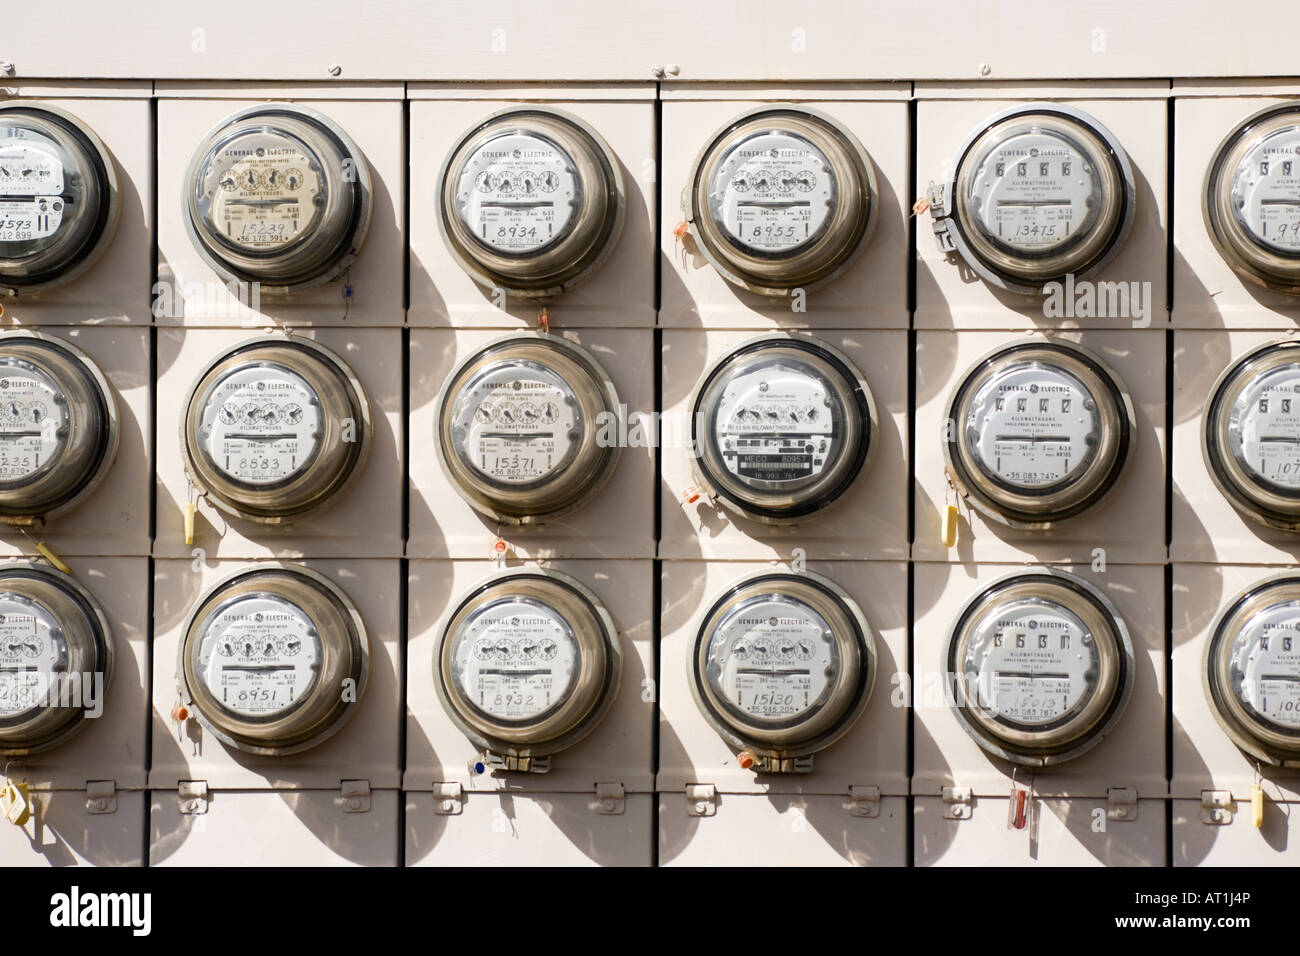 Electric Meters Wailuku Maui Hawaii - Stock Image